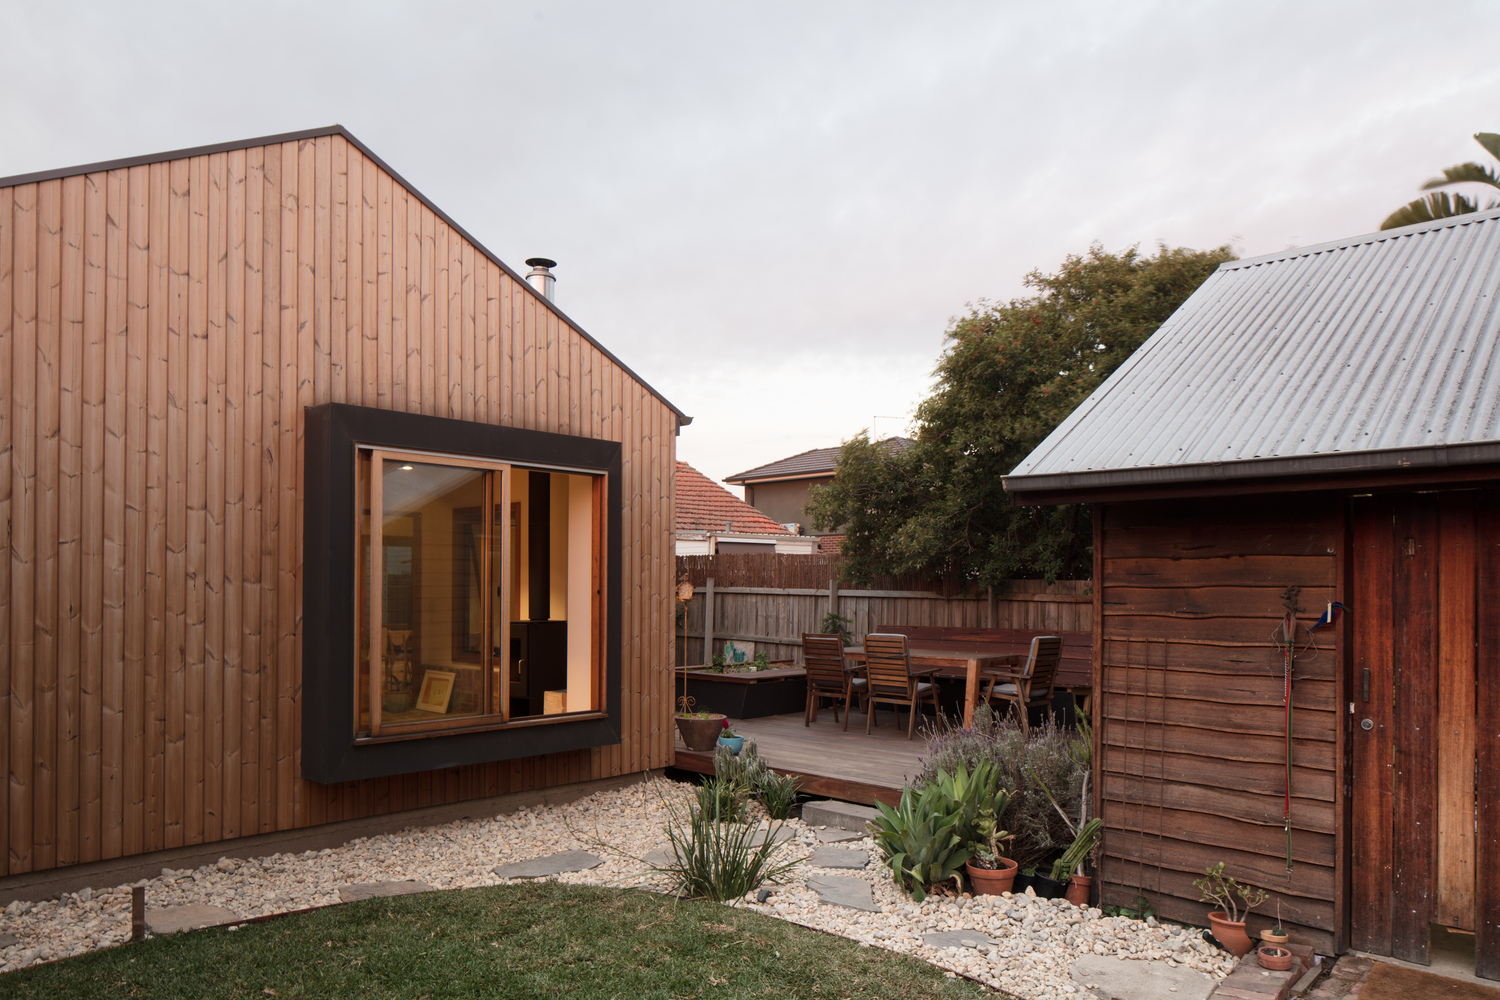 Gallery of Urban Barnyard House / Inbetween Architecture - 5